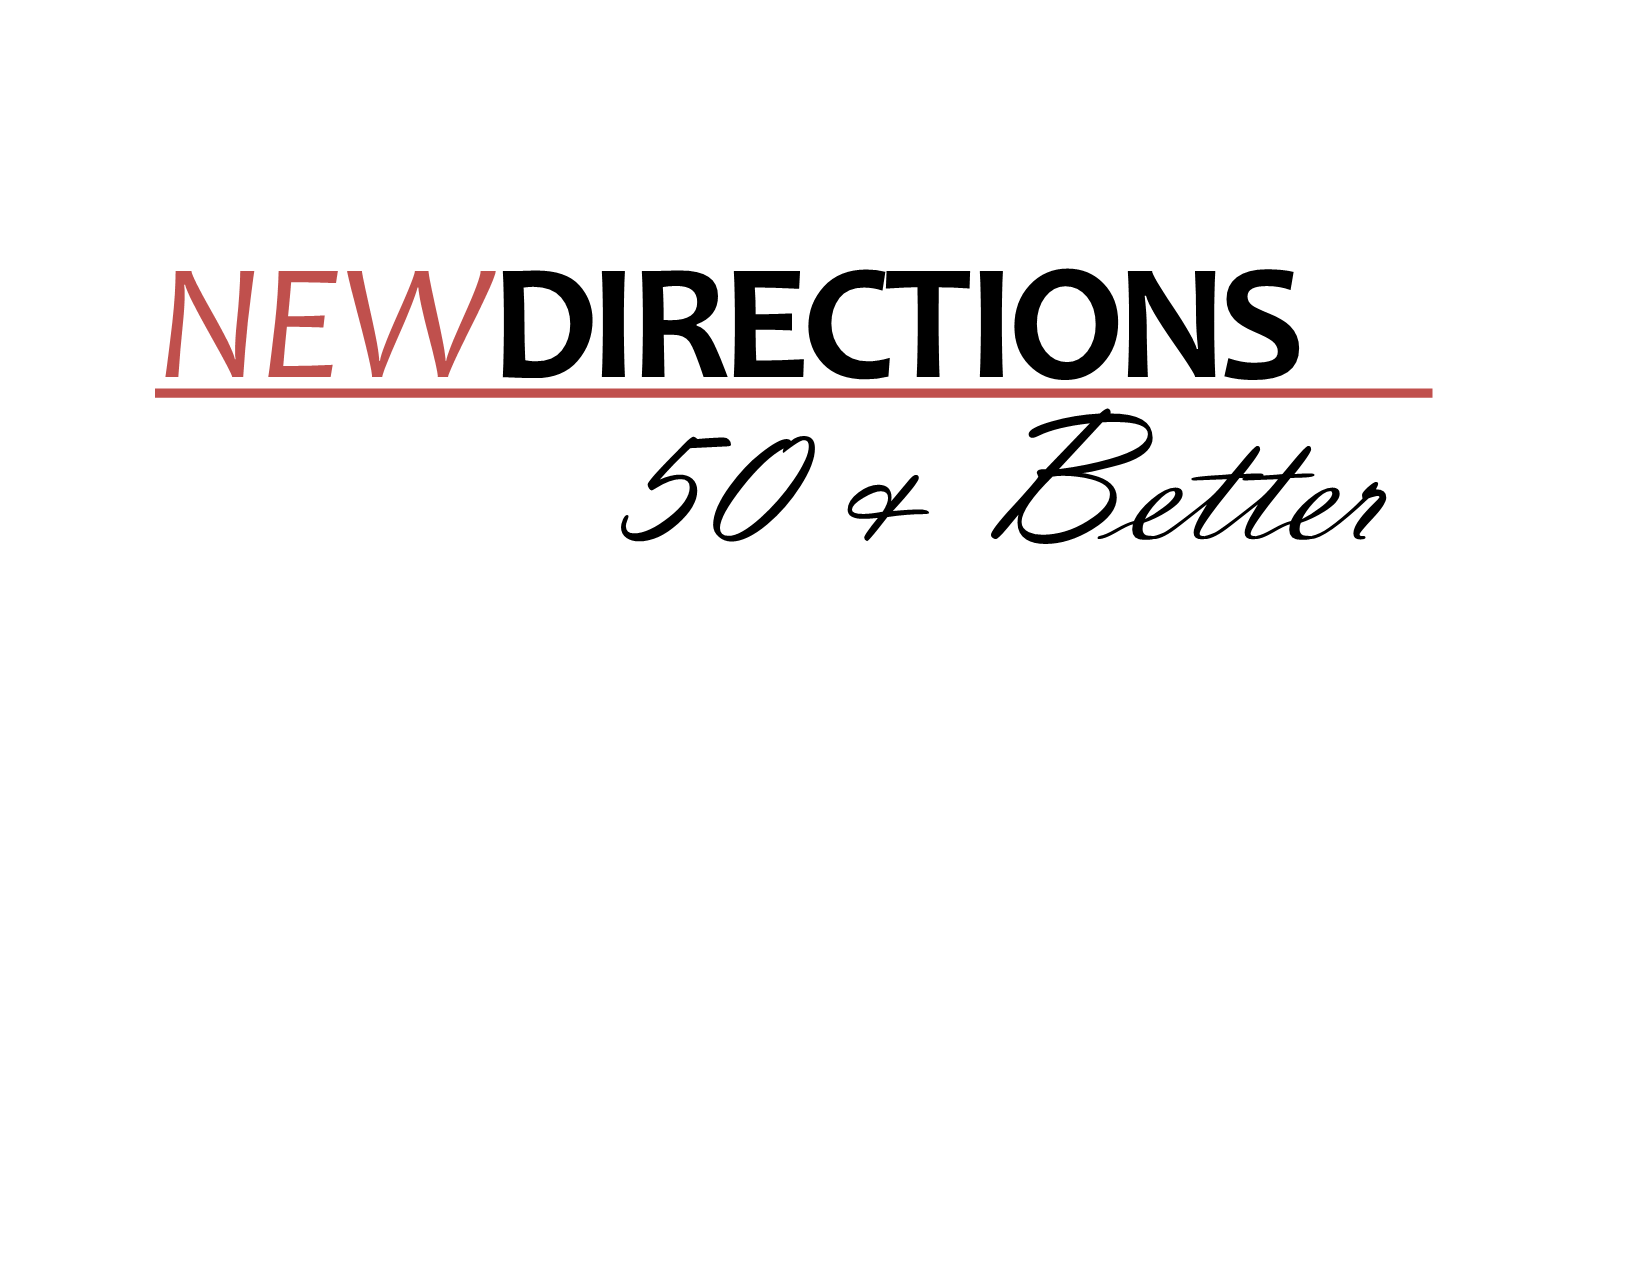 New Directions - 50 & Better